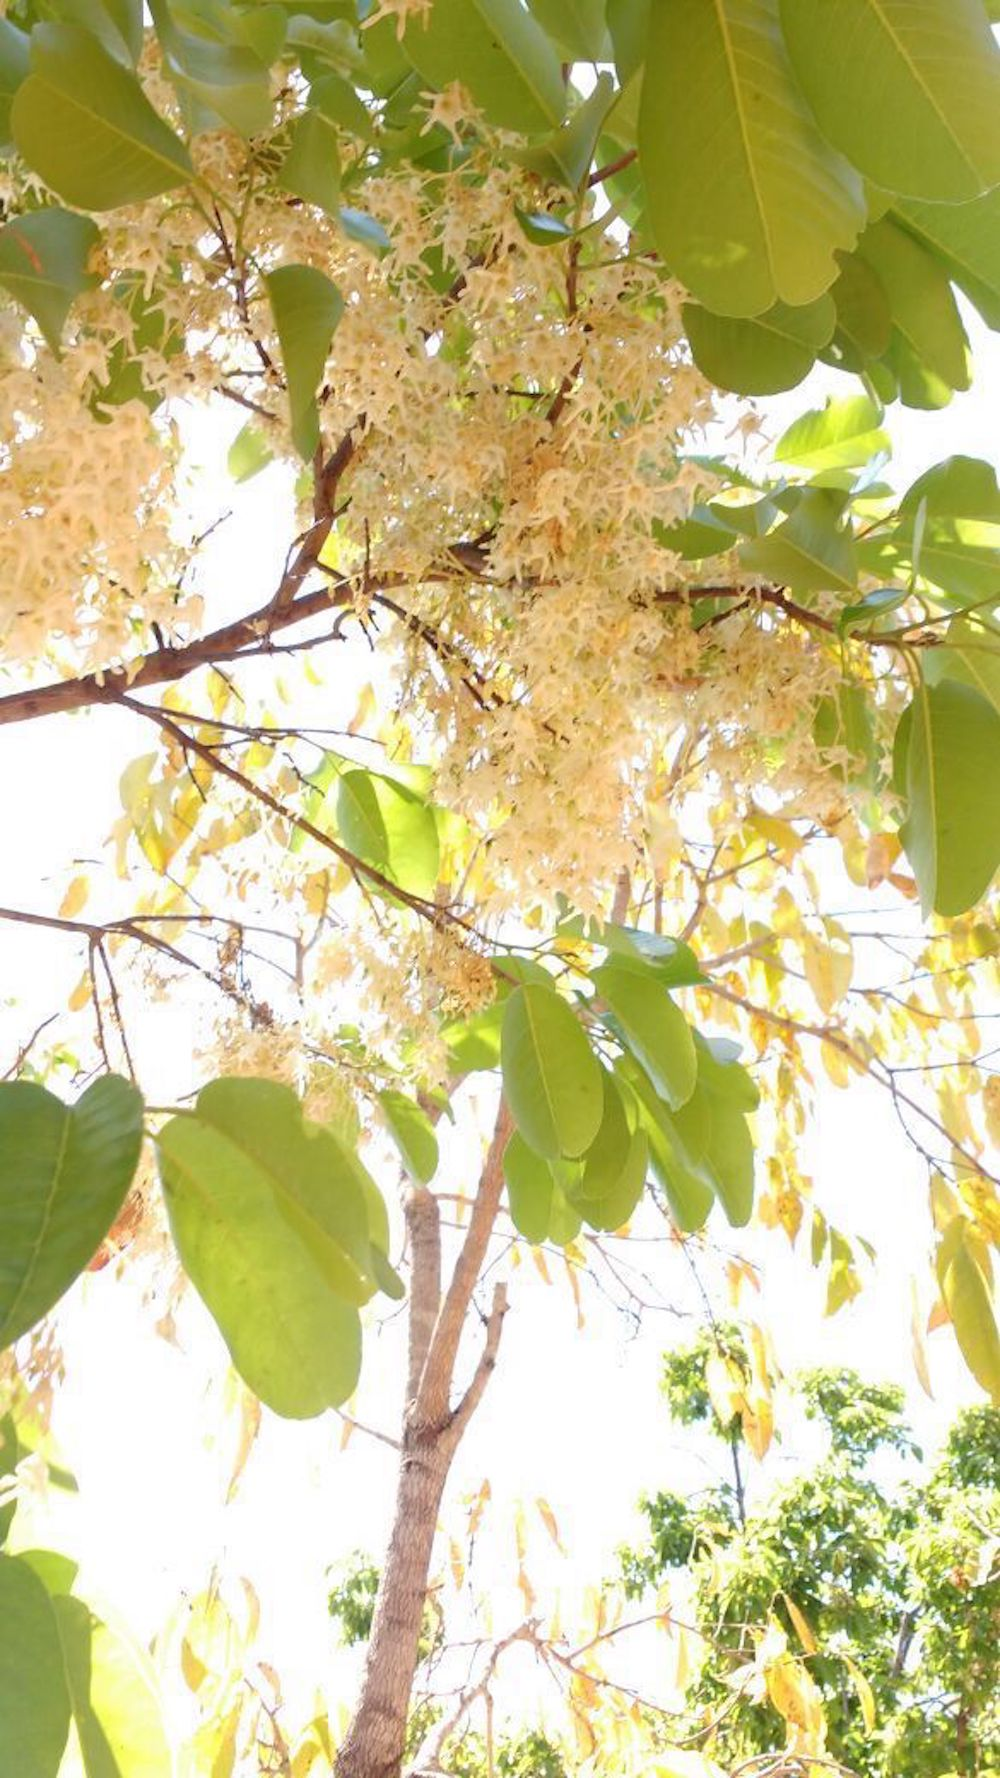 Shorea roxburghii  (ಜಾಲಾರಿ) occurs gregariously in the forests of Mysuru and Bengaluru. The trees flower during Shivarathri,filling the forest air with their strong fragrance.